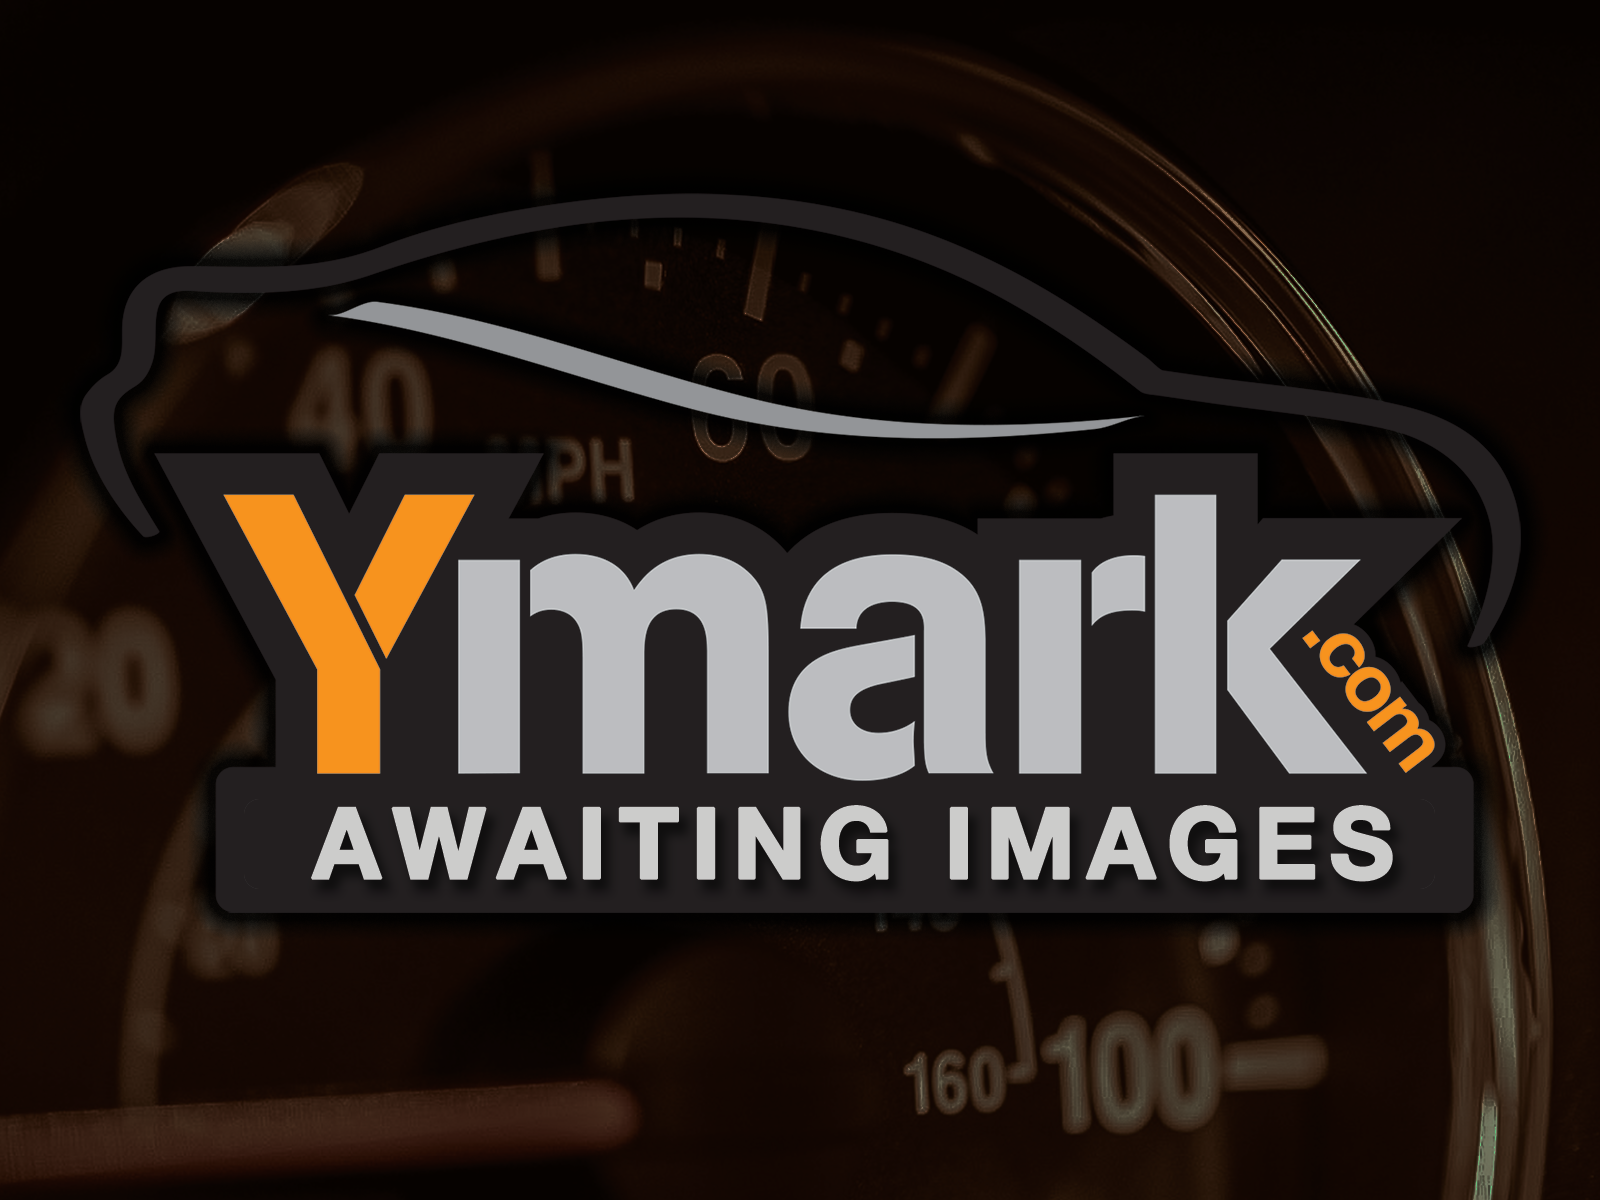 Ymark-Awaiting-Images